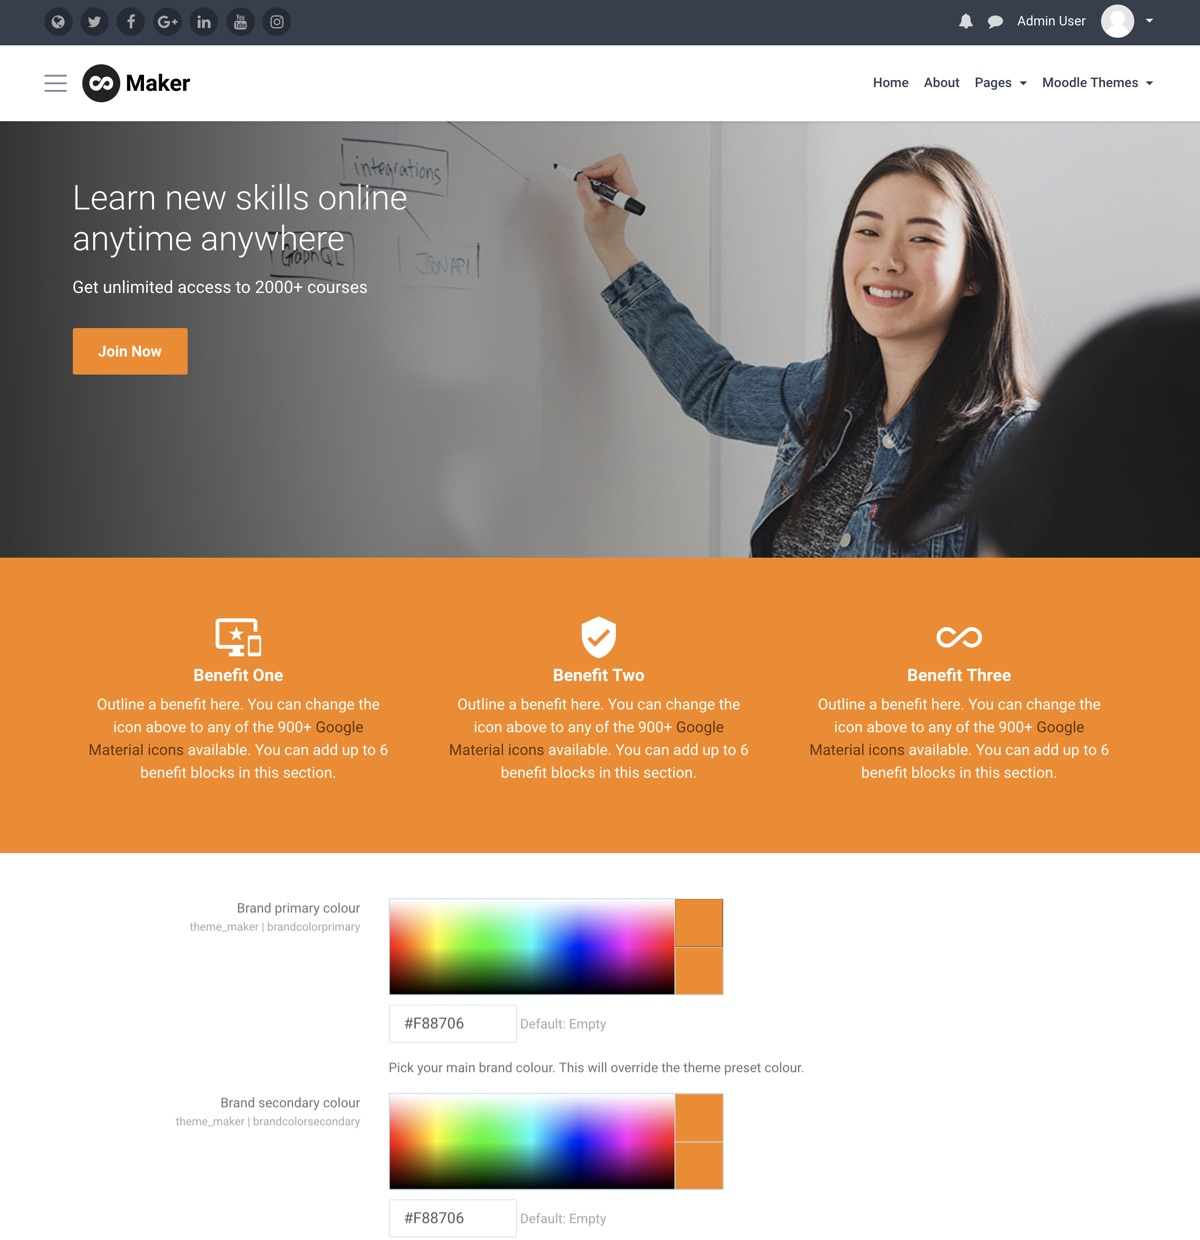 moodle-theme-maker-custom-color-scheme-example-1-final